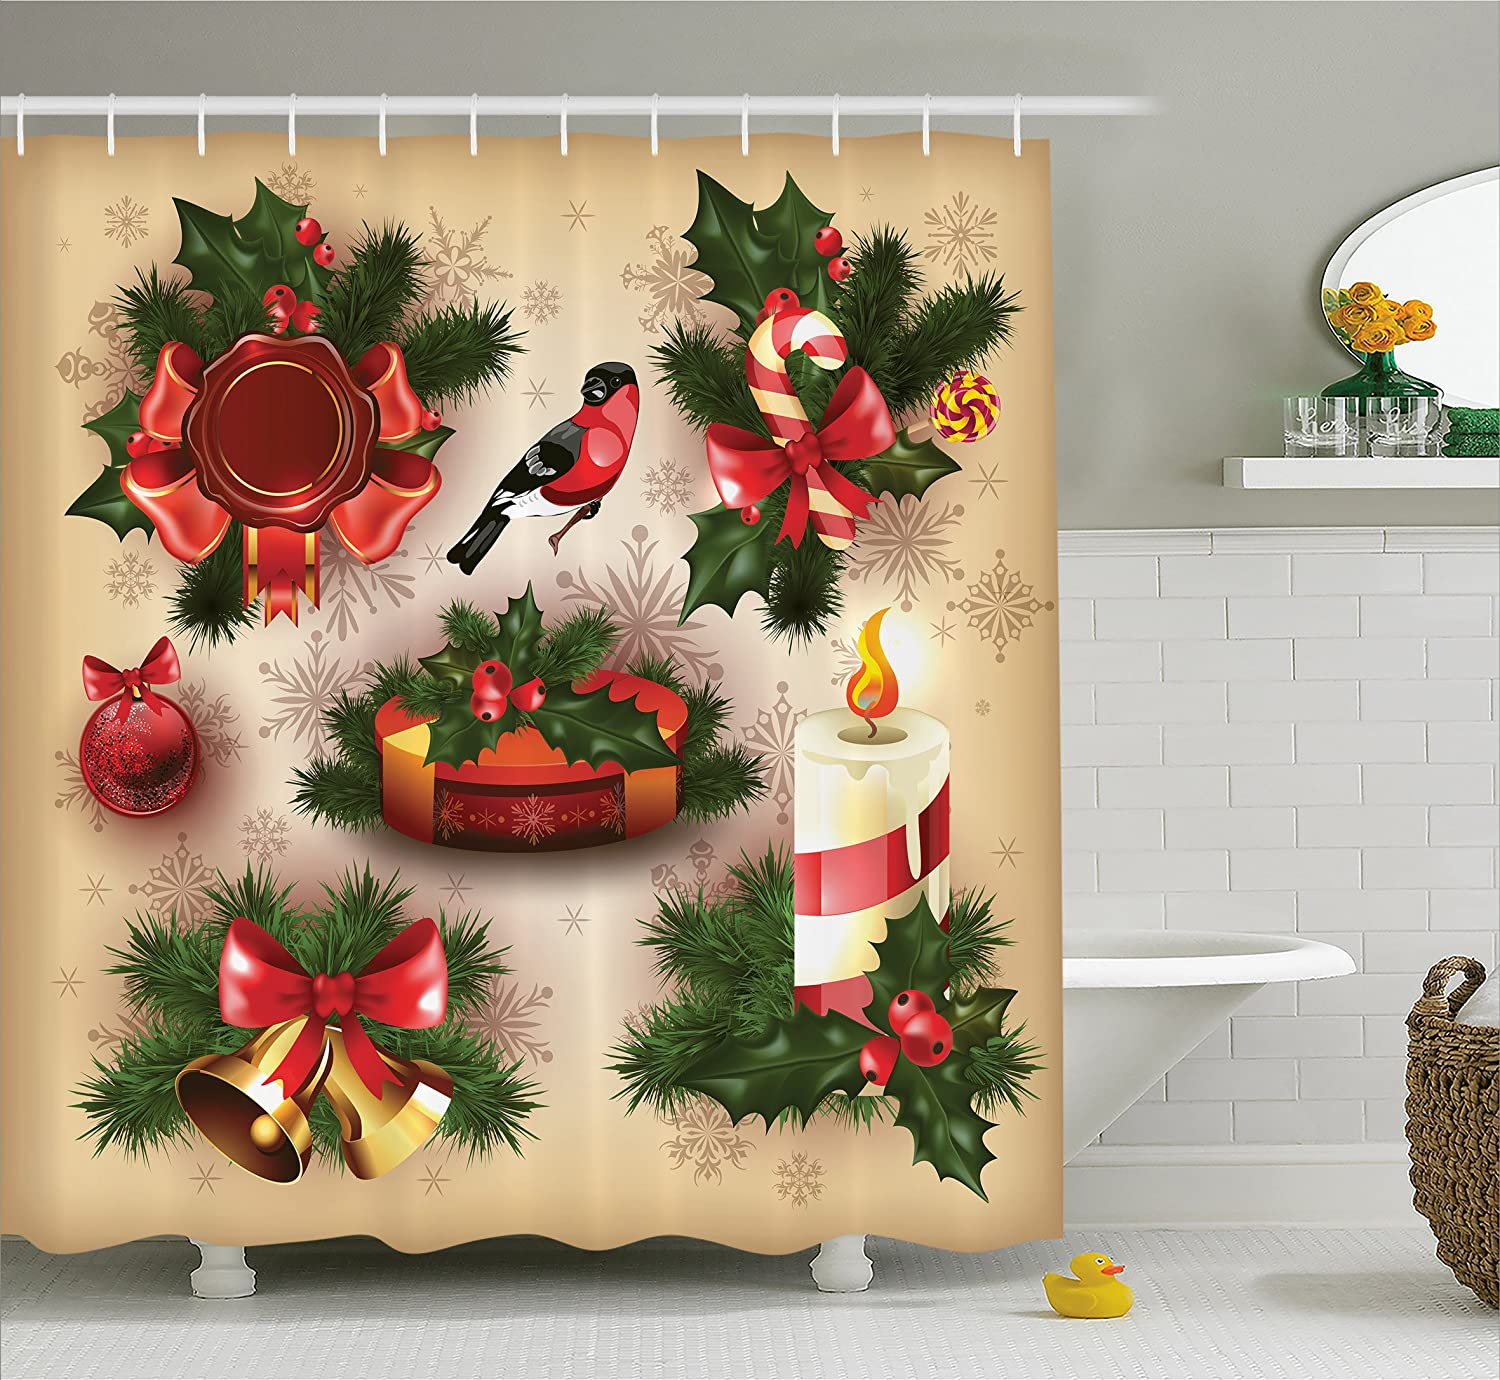 Christmas Bathroom Sets Amazon: Christmas Shower Curtain Retro Vintage By Ambesonne